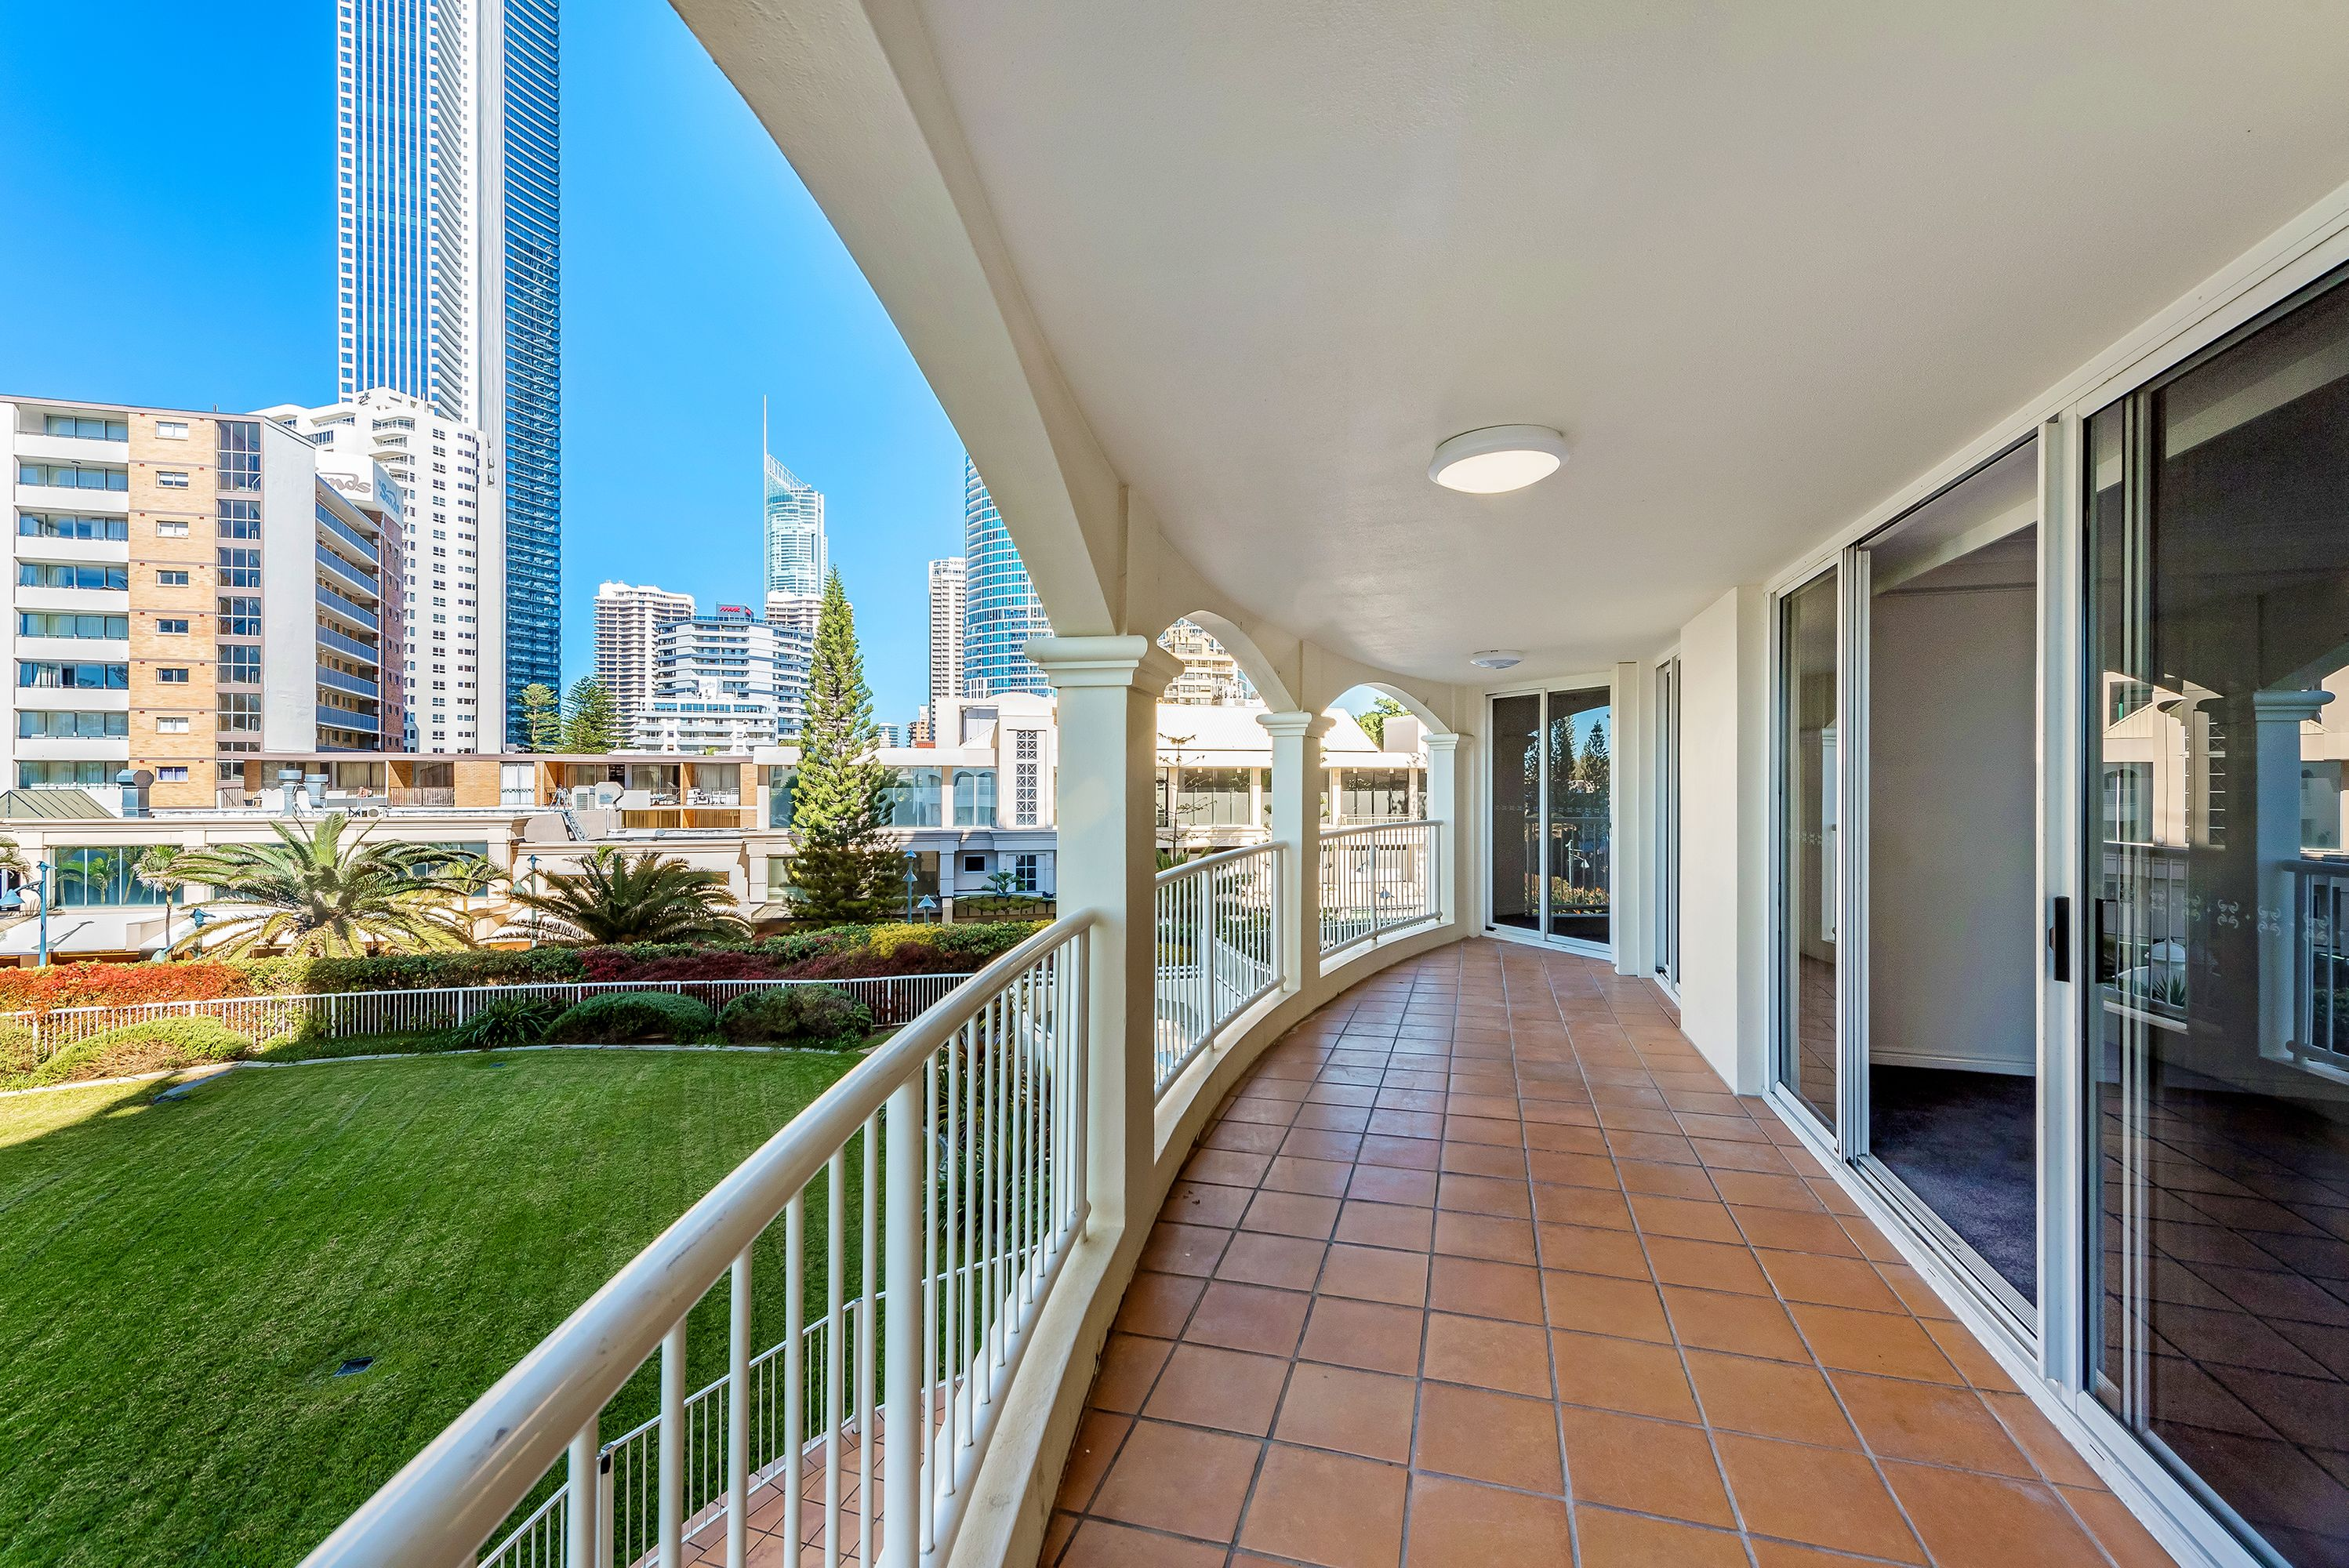 7/7-11 Elkhorn Ave, Surfers Paradise, QLD 4217